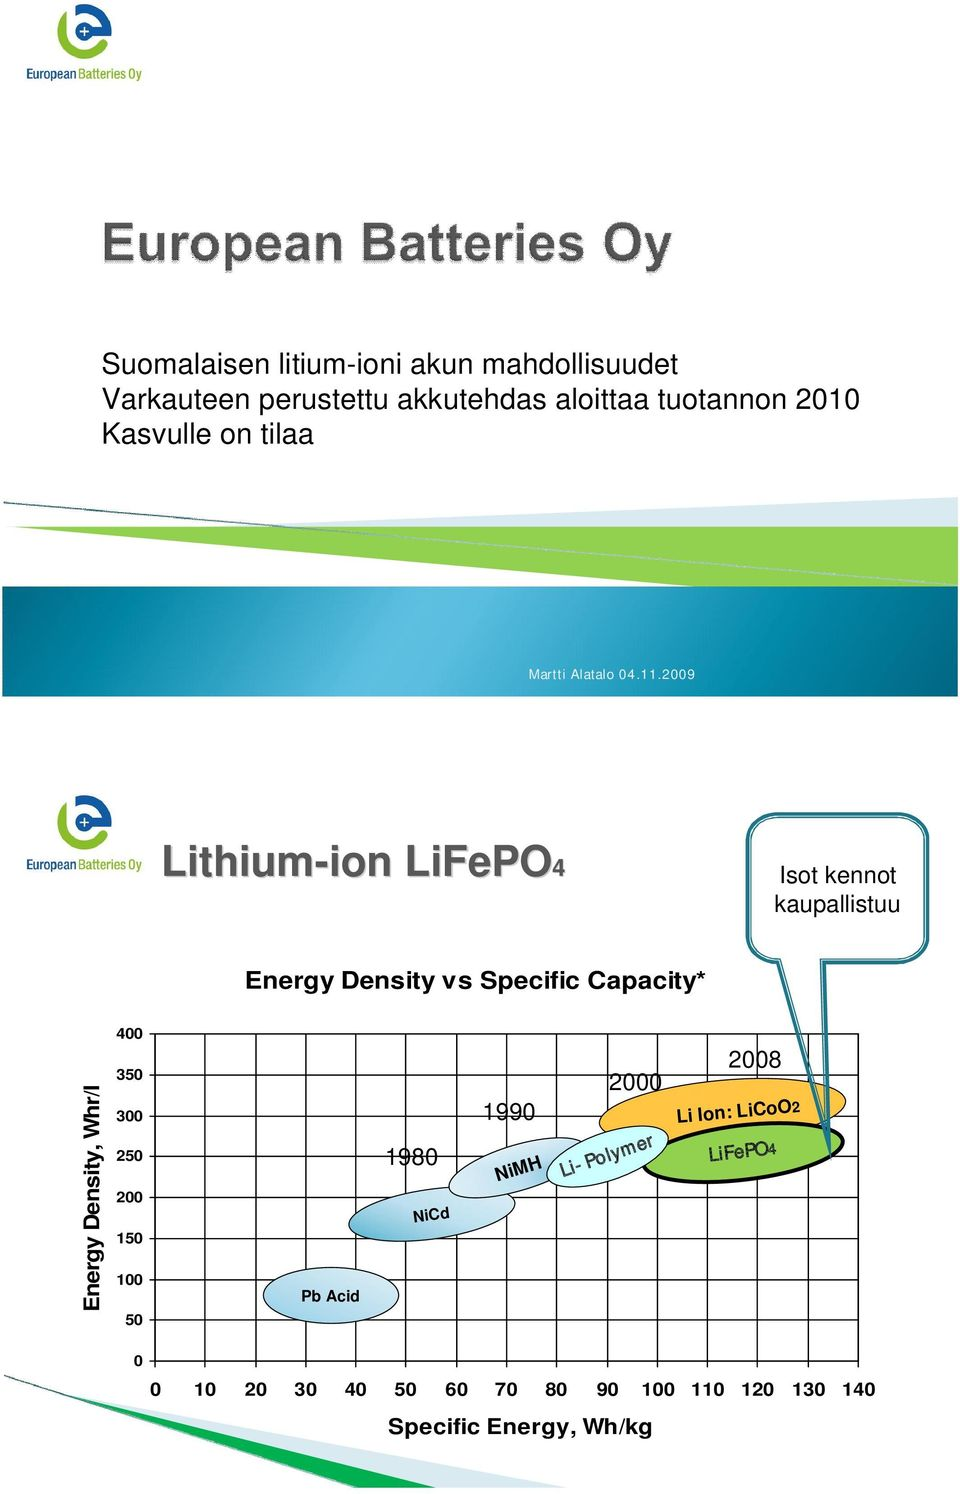 2009 Lithium-ion ion LiFePO4 Isot kennot kaupallistuu Energy Density vs Specific Capacity* Energy Density,